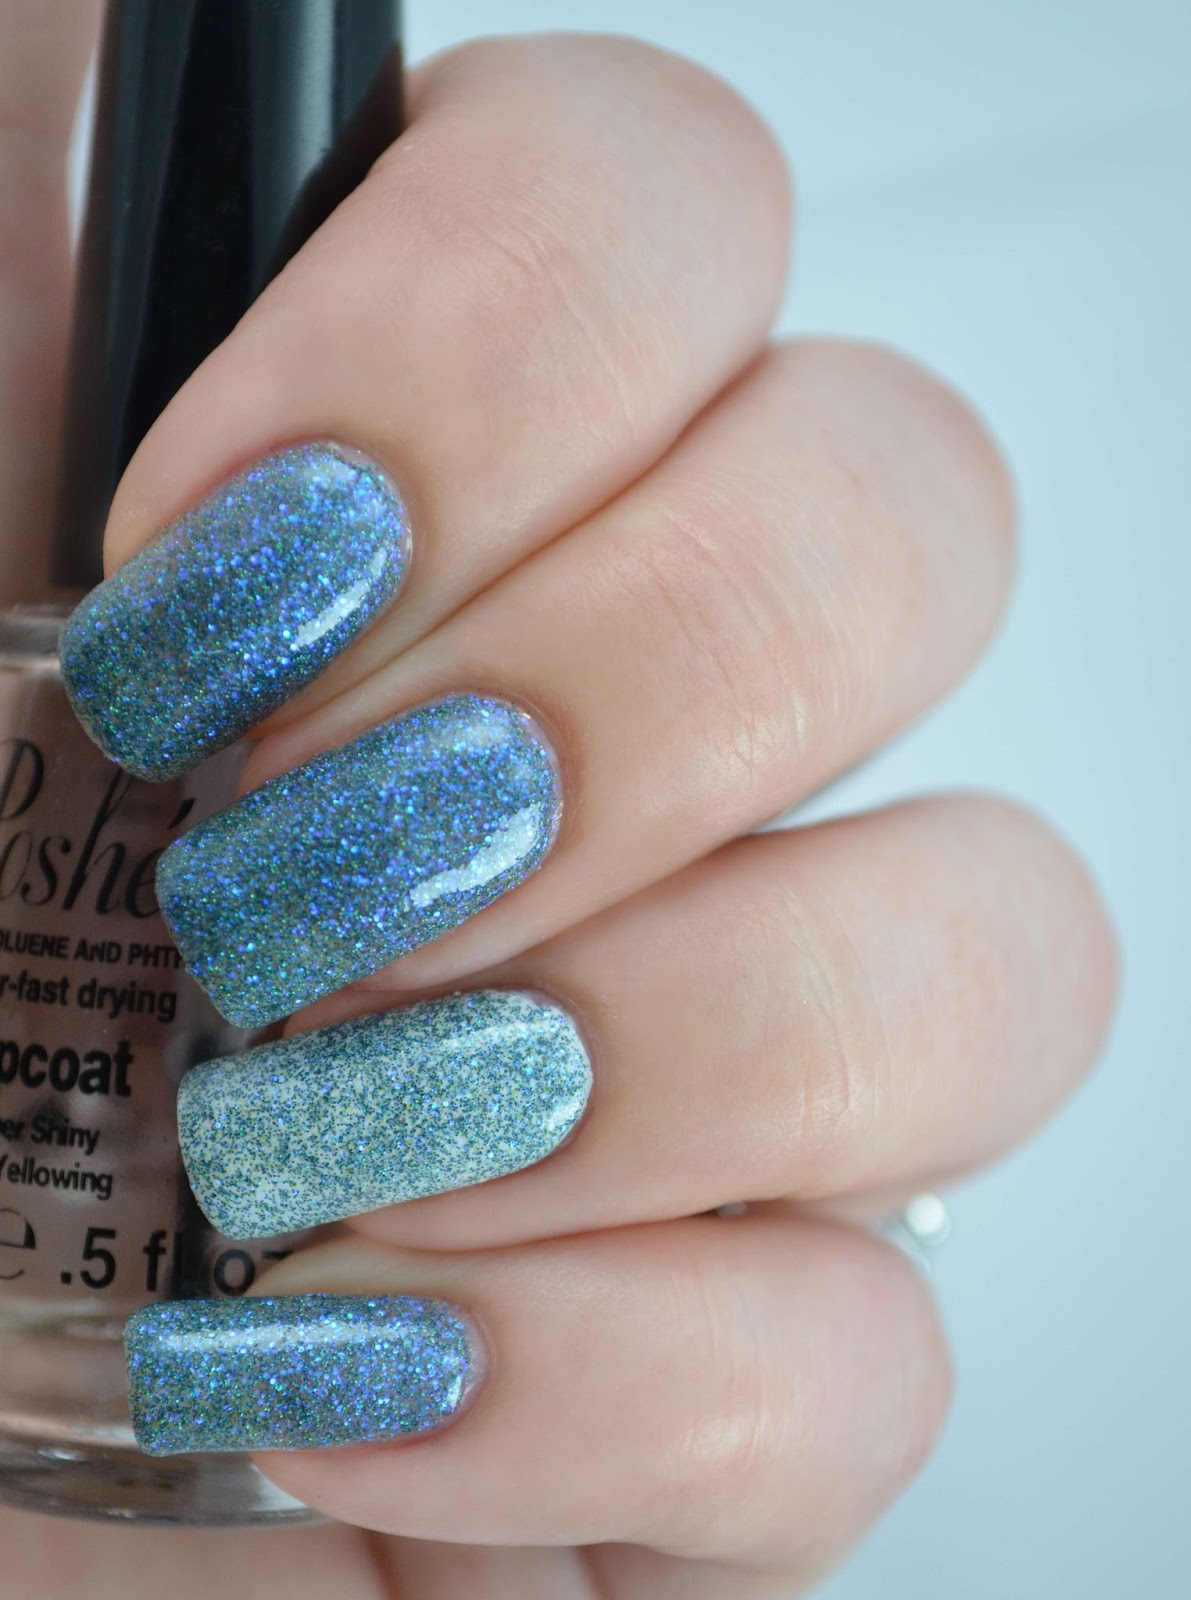 Reverie Nail Lacquer Mermaid Scales Summer 2014